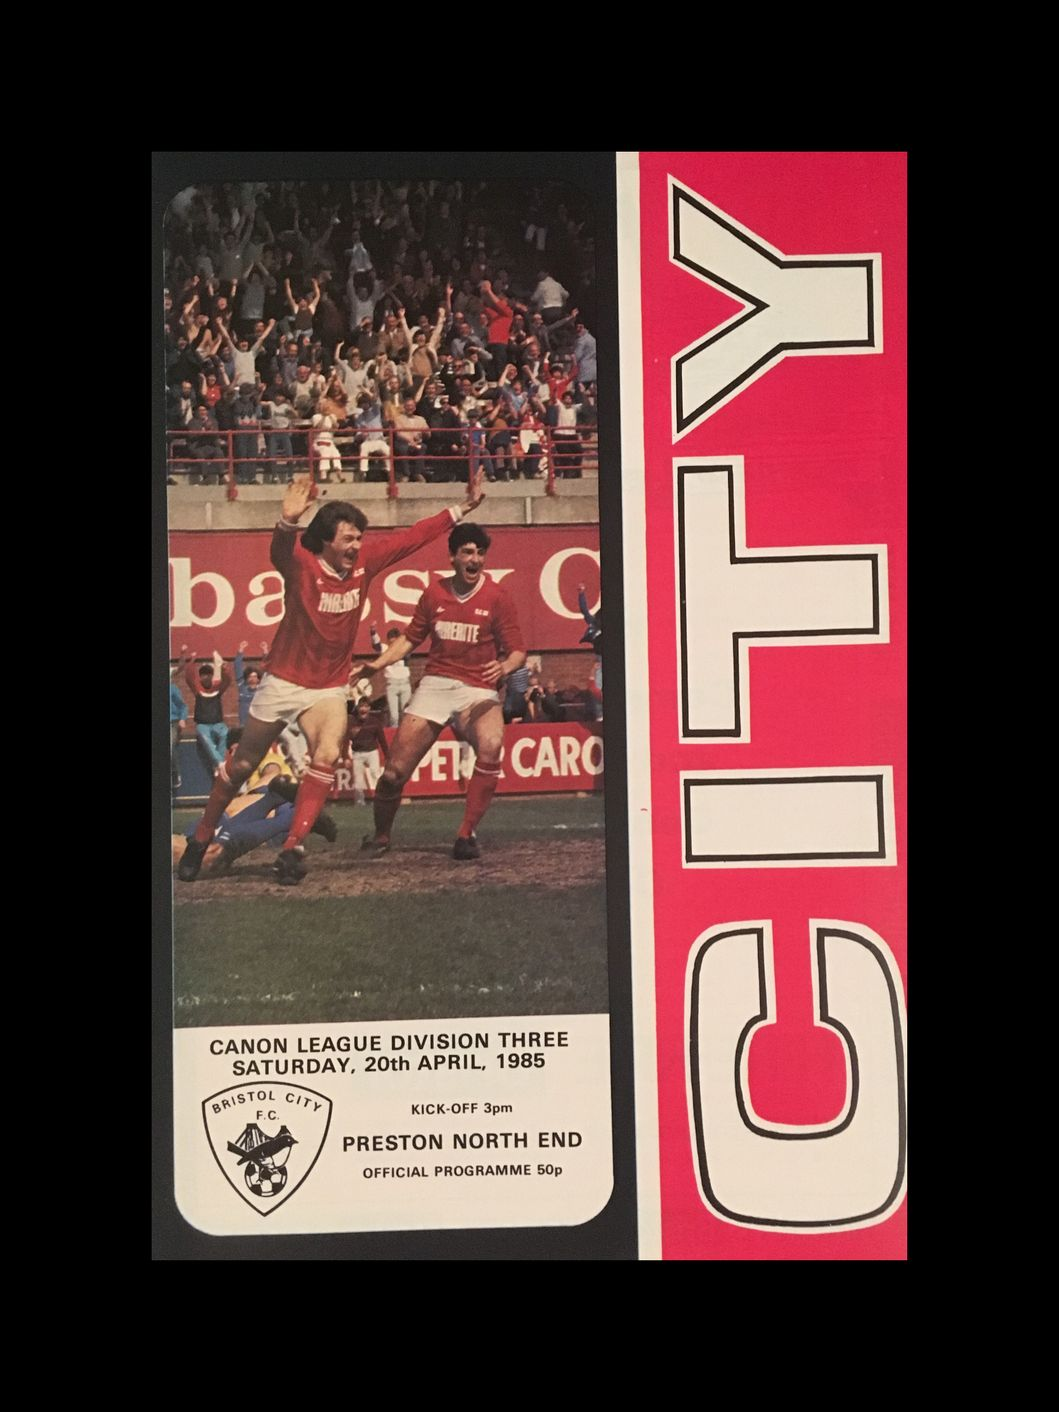 Bristol City v Preston North End 20-04-85 Programme